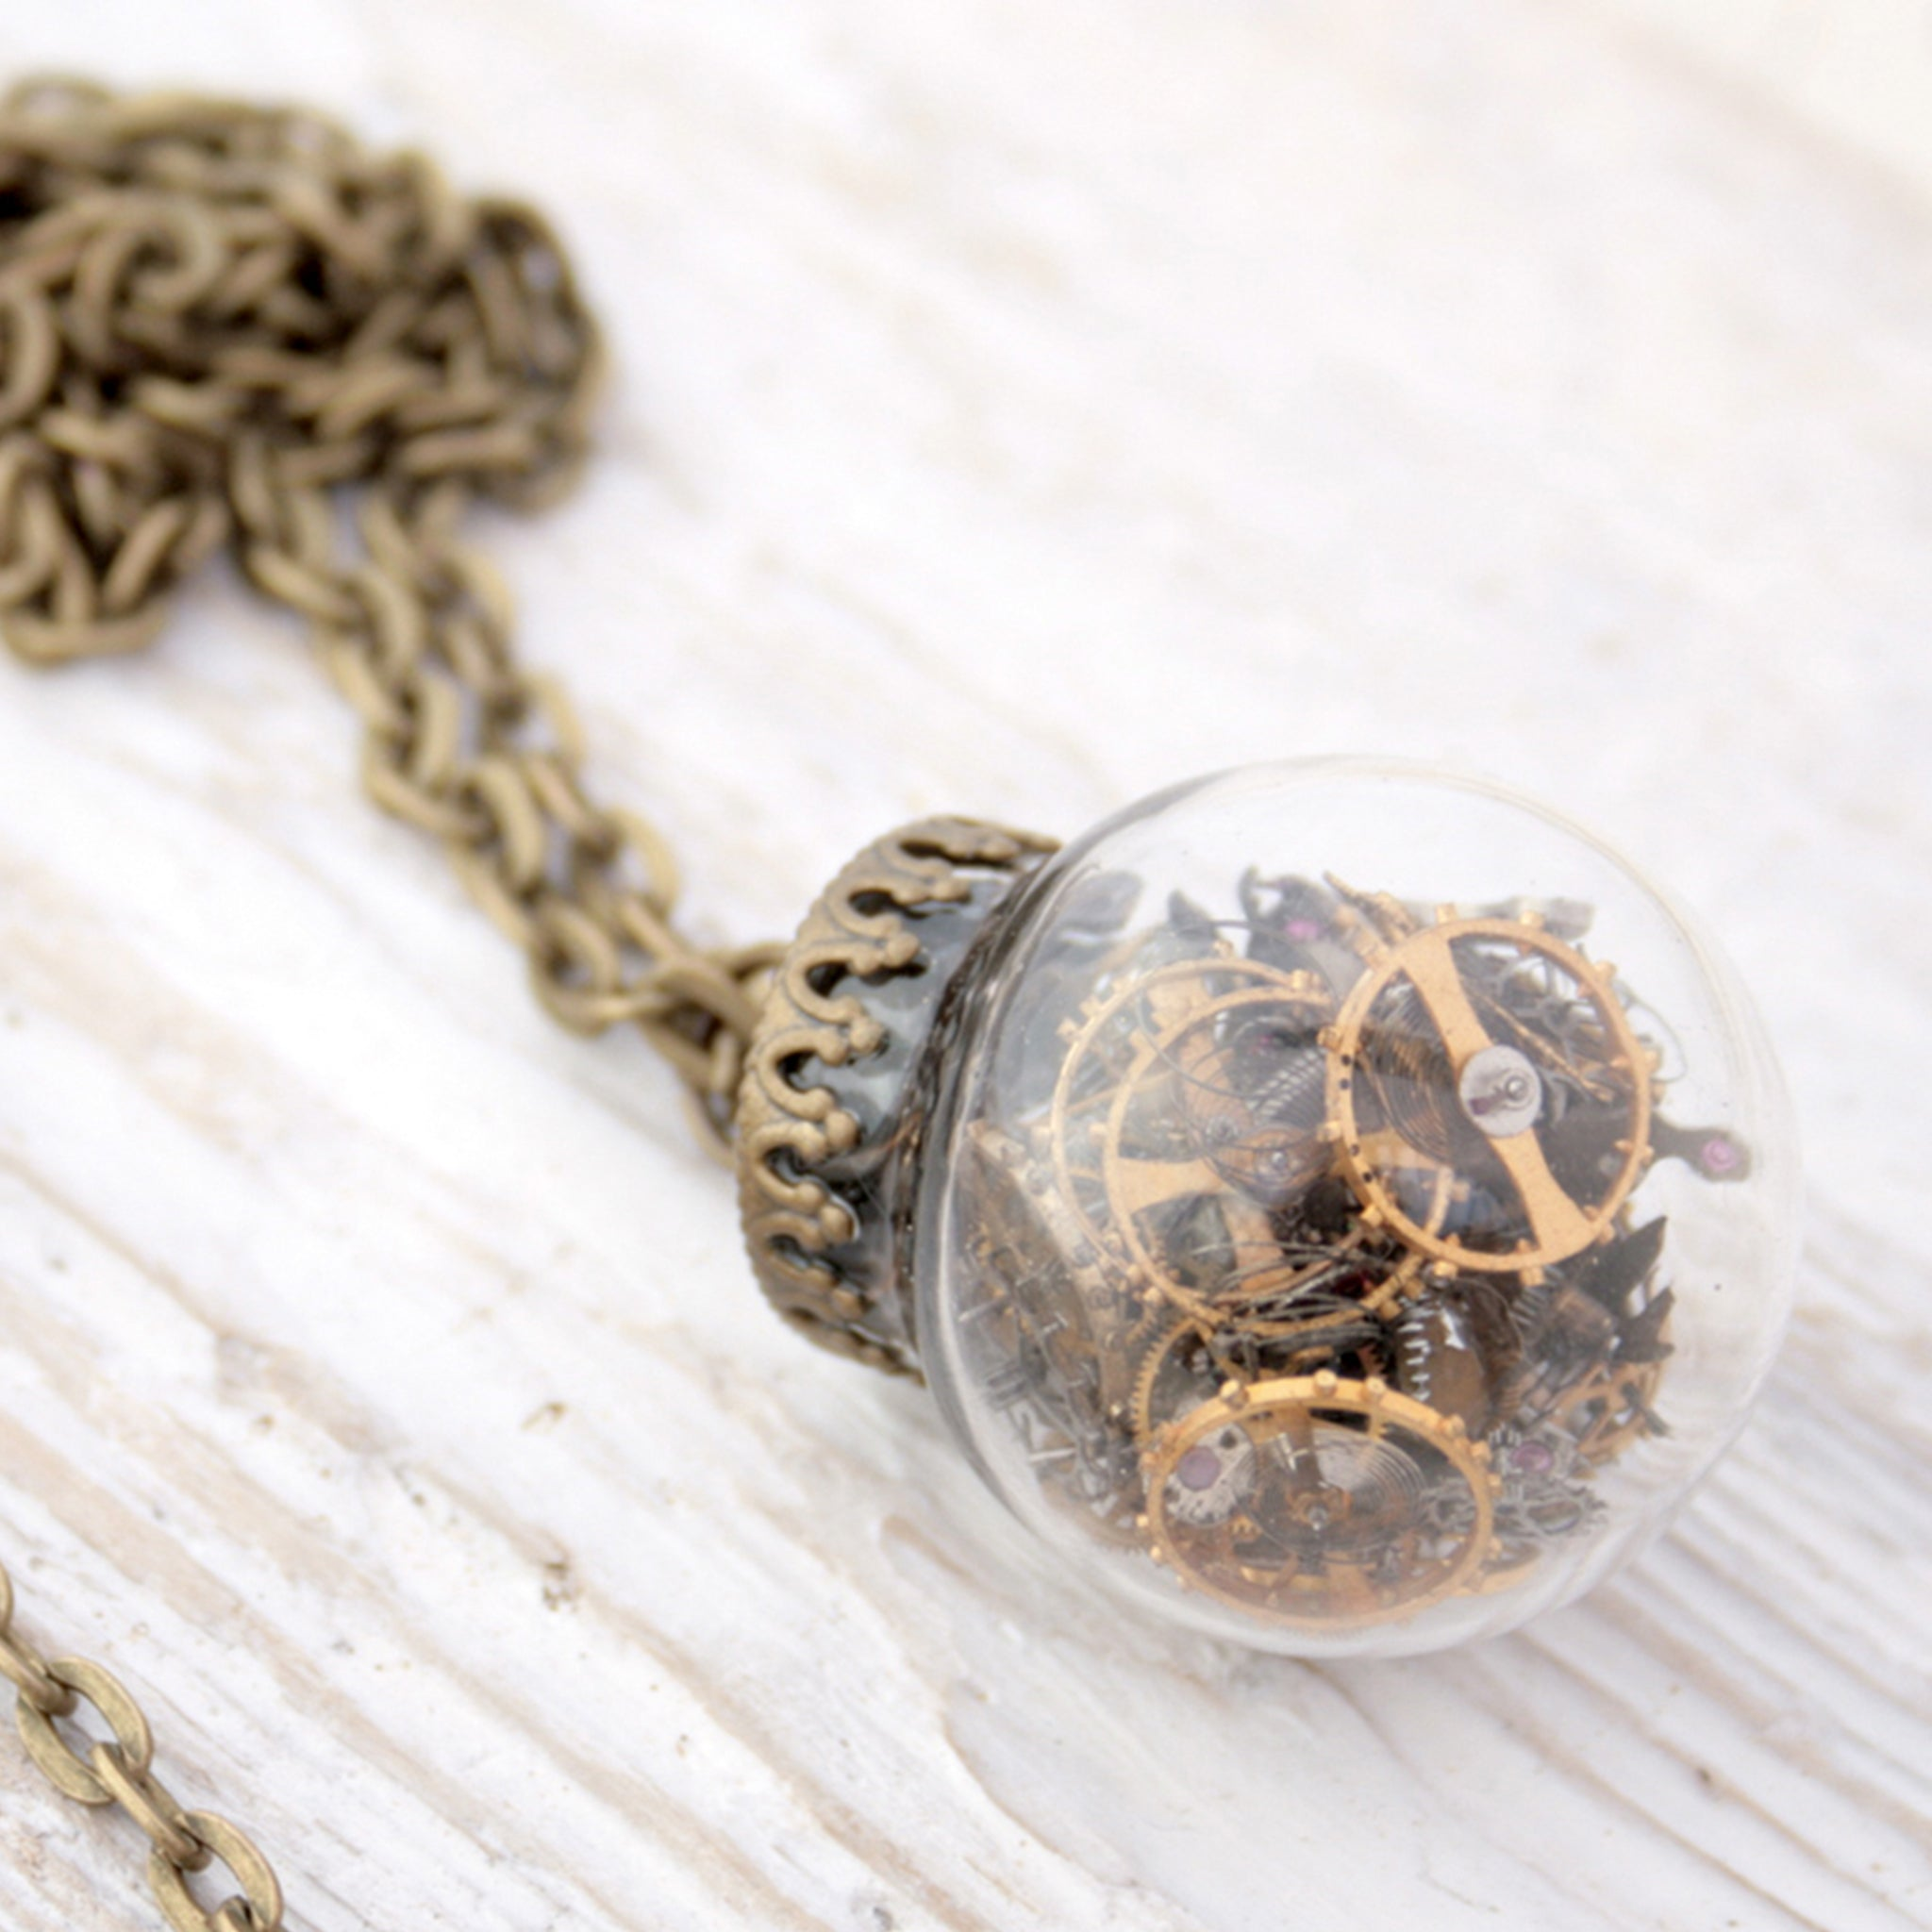 Glass Terrarium Necklace with Steampunk Watch Parts